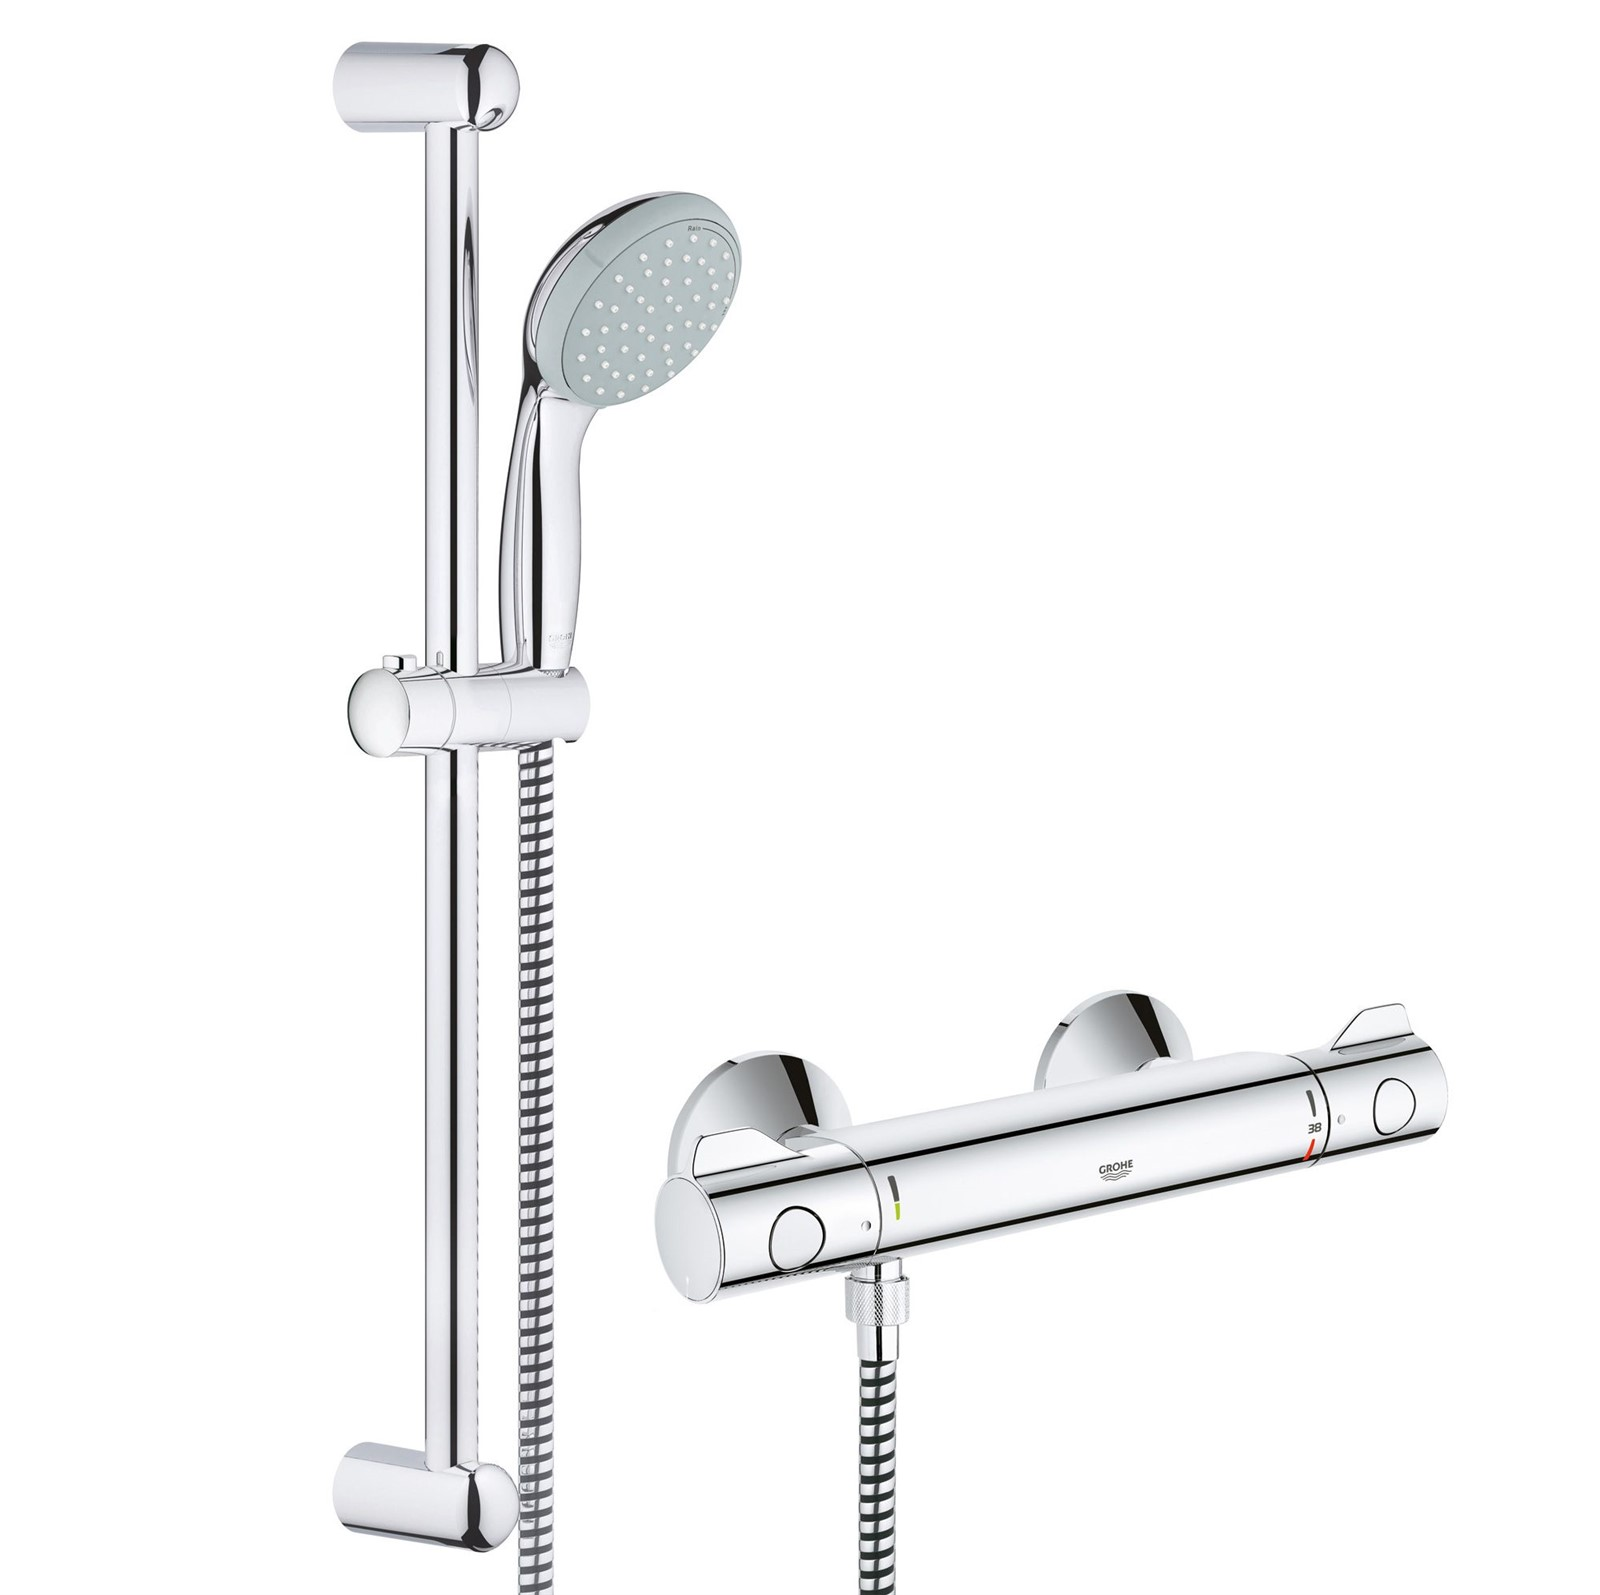 grohe grohtherm 800 mitigeur thermostatique bain douche. Black Bedroom Furniture Sets. Home Design Ideas